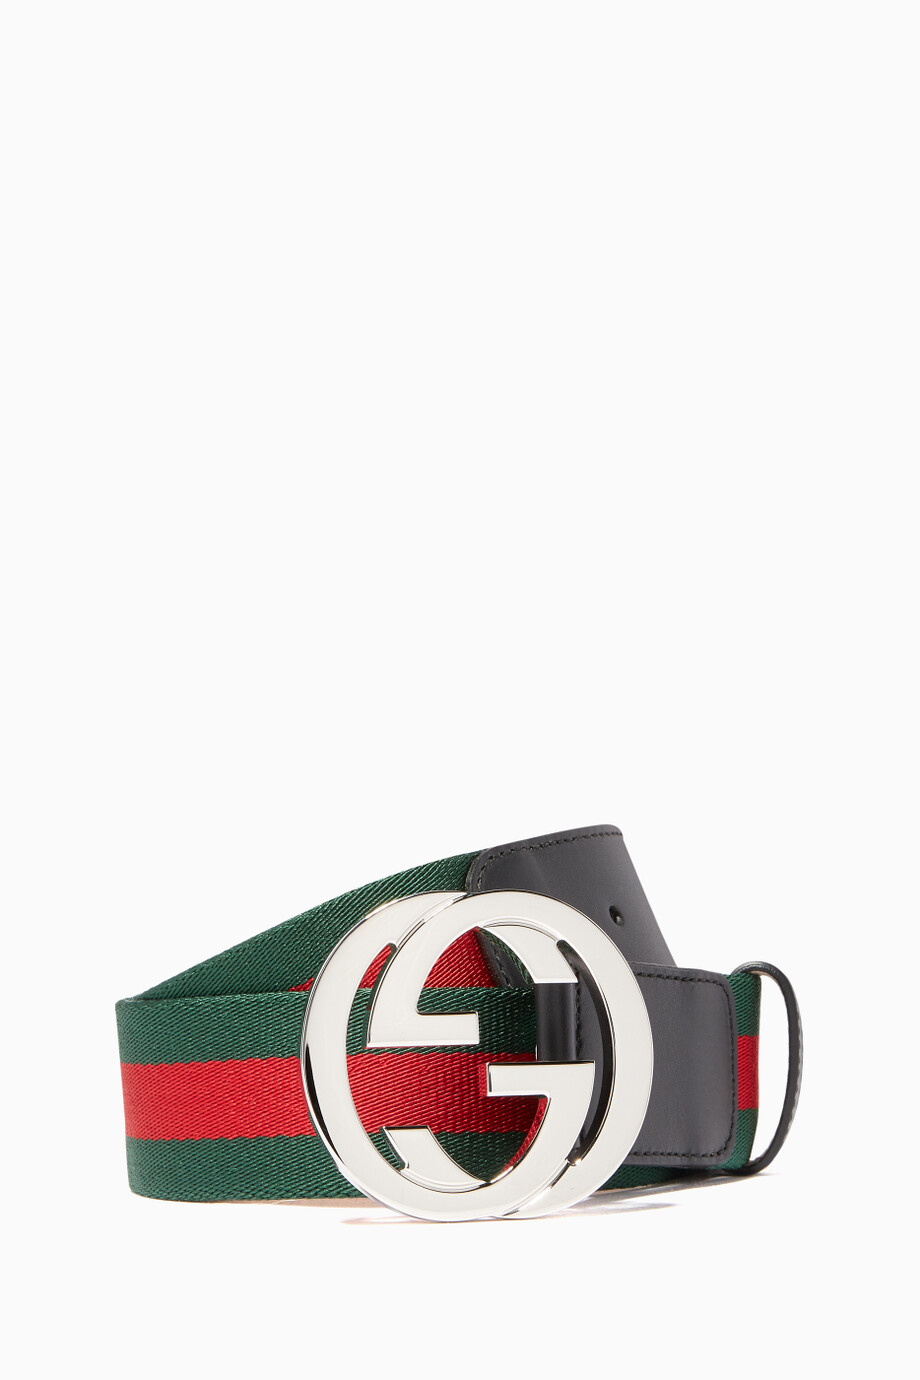 33d22ae82 SHOP GUCCI · MenAccessoriesBeltsCasual Belts. Green & Red Leather-Trimmed  Web ...